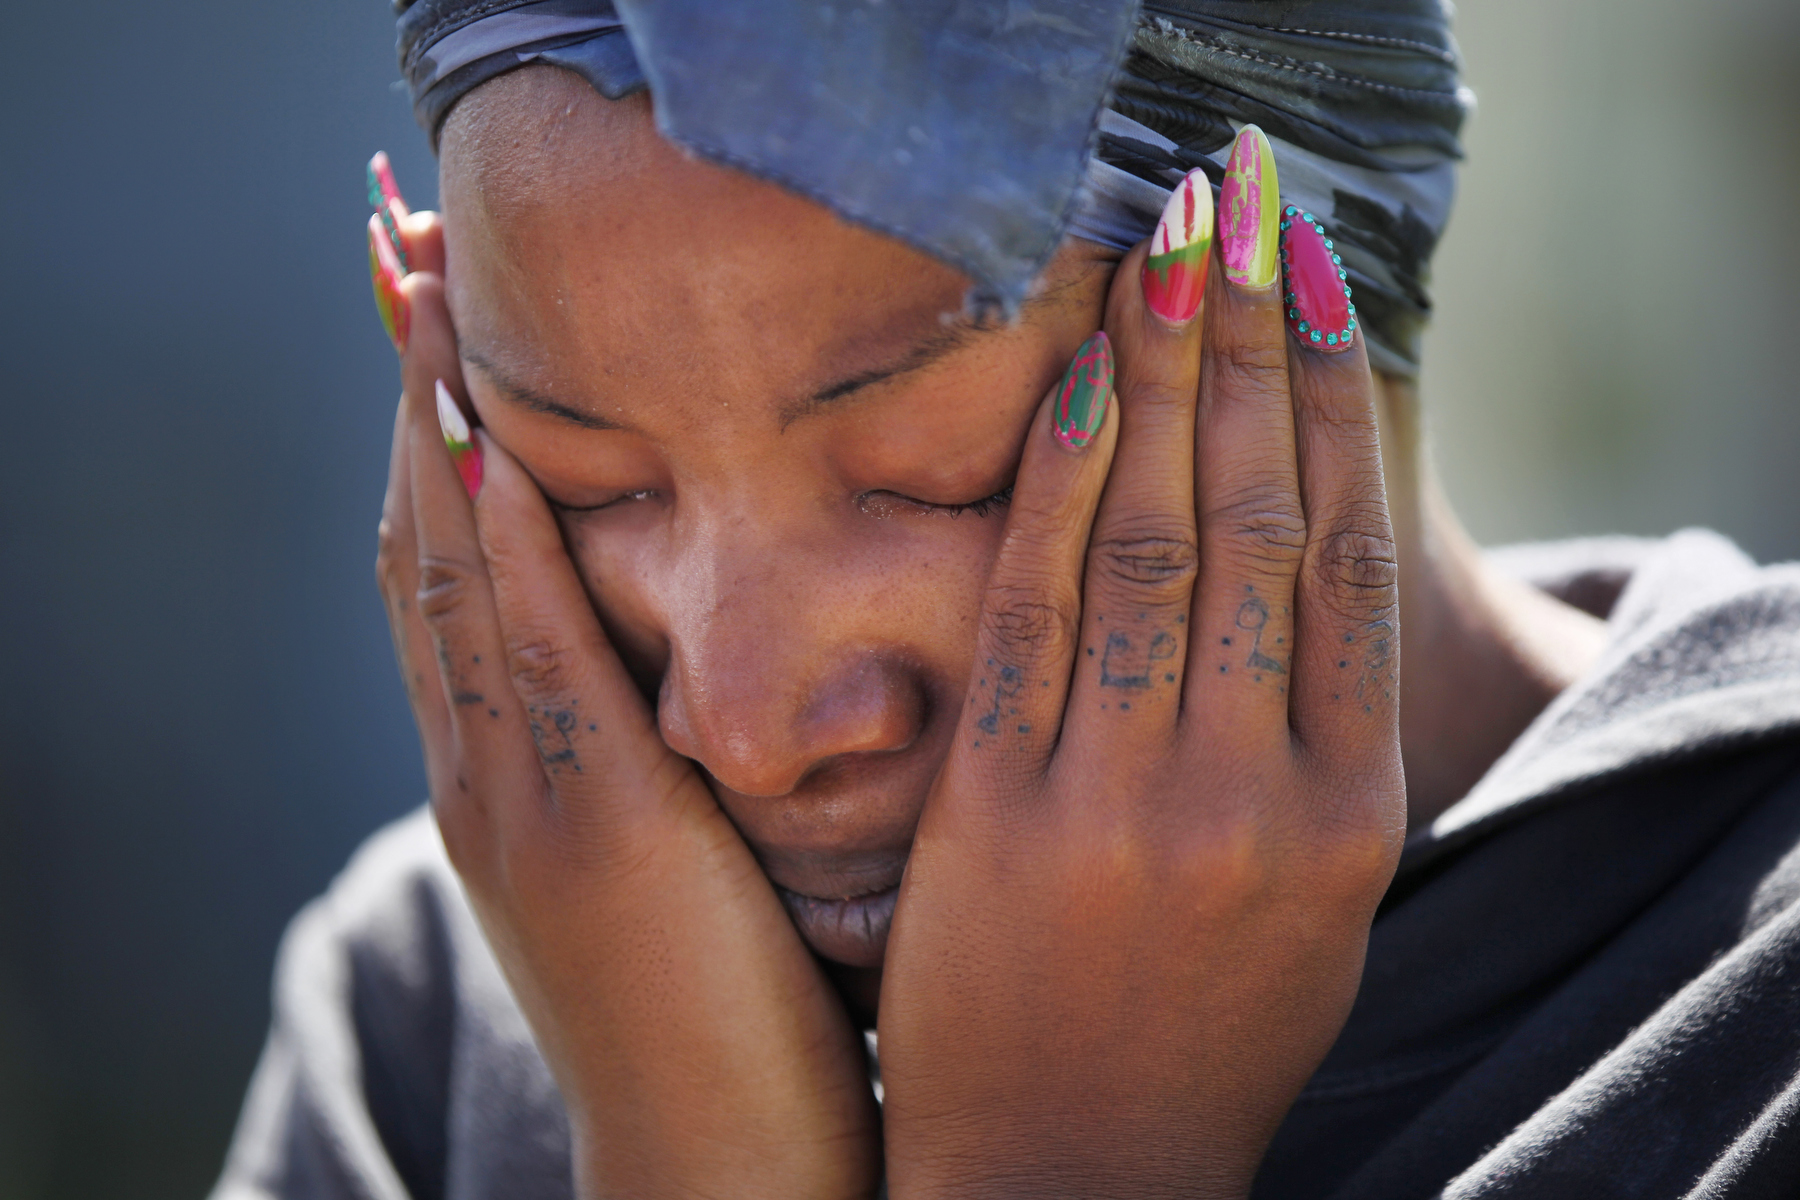 Davina Brooks, 26, becomes emotional as she tells media about getting the call that the apartment her nephew lived in was on fire as she stands at the scene in Sunnydale April 16, 2014 in San Francisco, Calif. There has been one confirmed death as a result of the Wednesday morning blaze. Brooks, who now lives in San Mateo, rushed to the scene as soon as she heard, fearing that her 3-year-old nephew didn\'t make it.